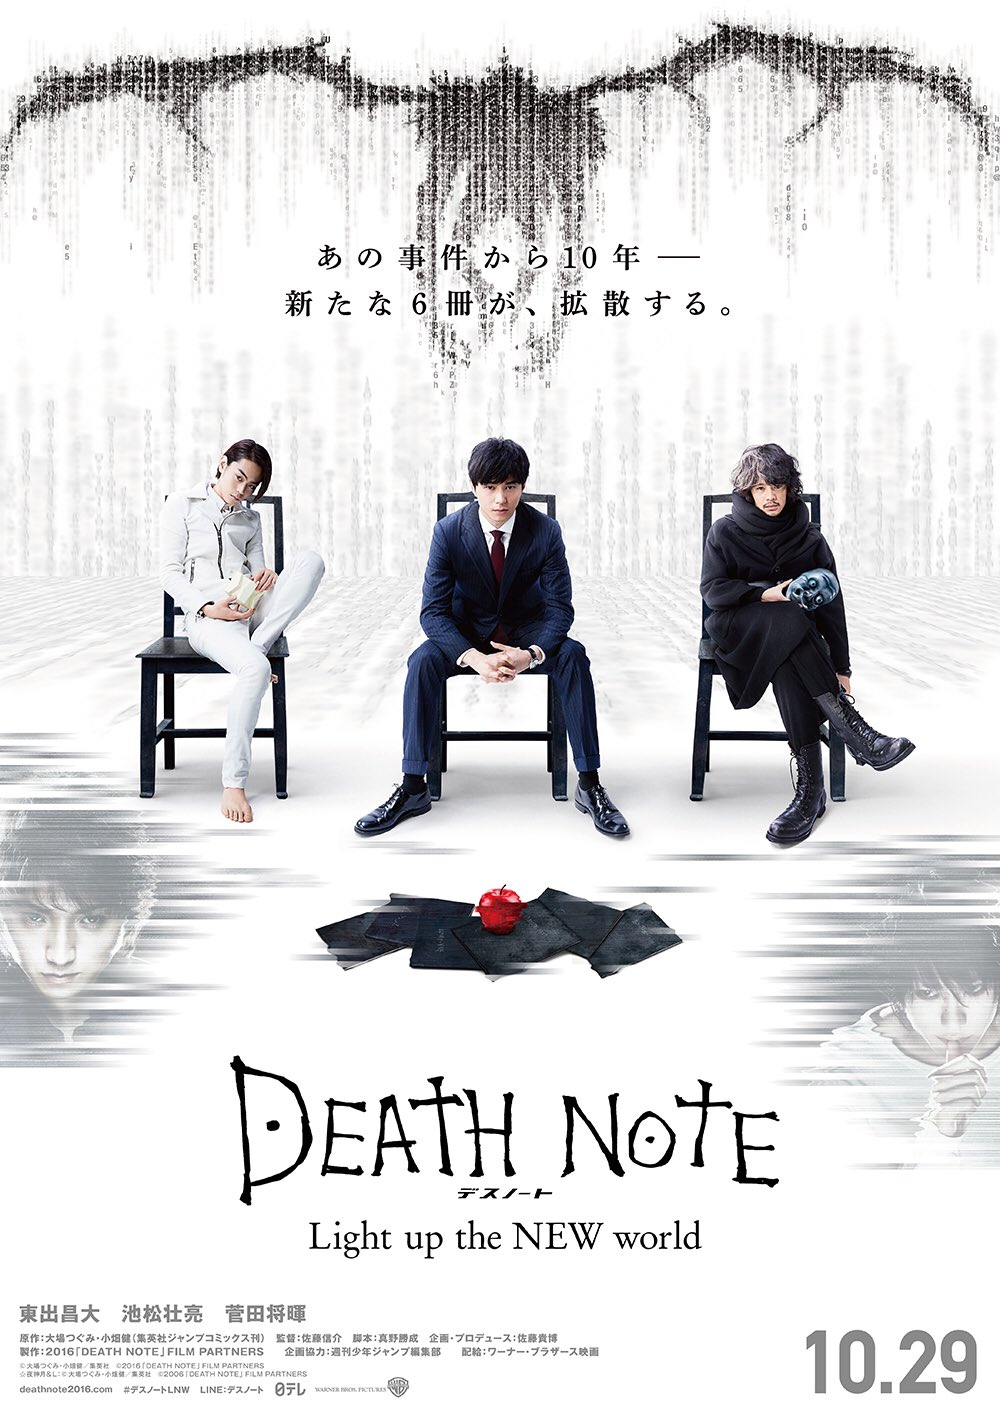 Google themes death note - Death Note Light Up The New World Death Note Wiki Fandom Powered By Wikia